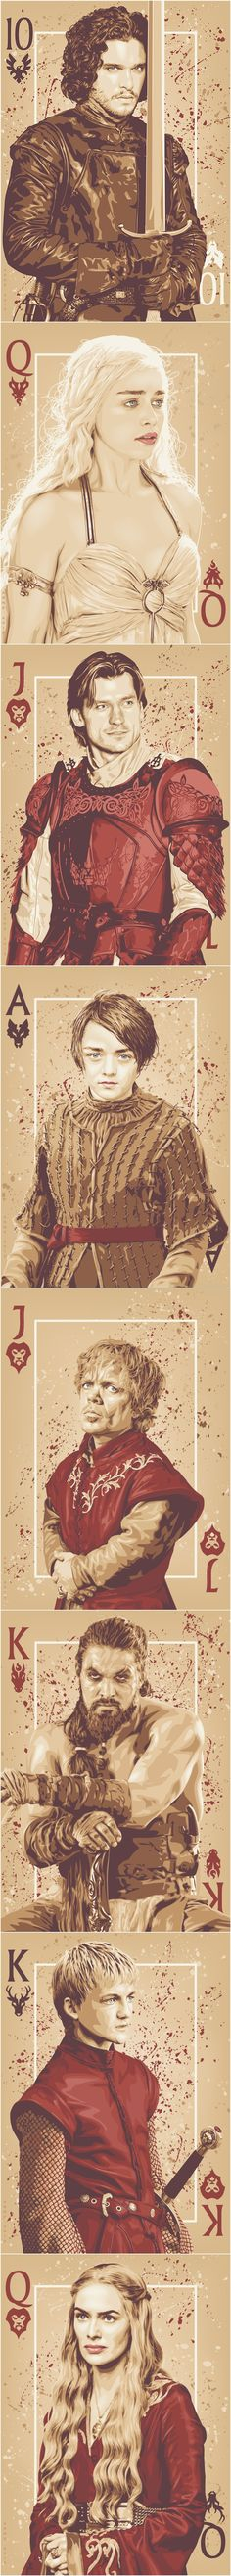 "Cards ""Game Of Thrones"" By Ratscape"